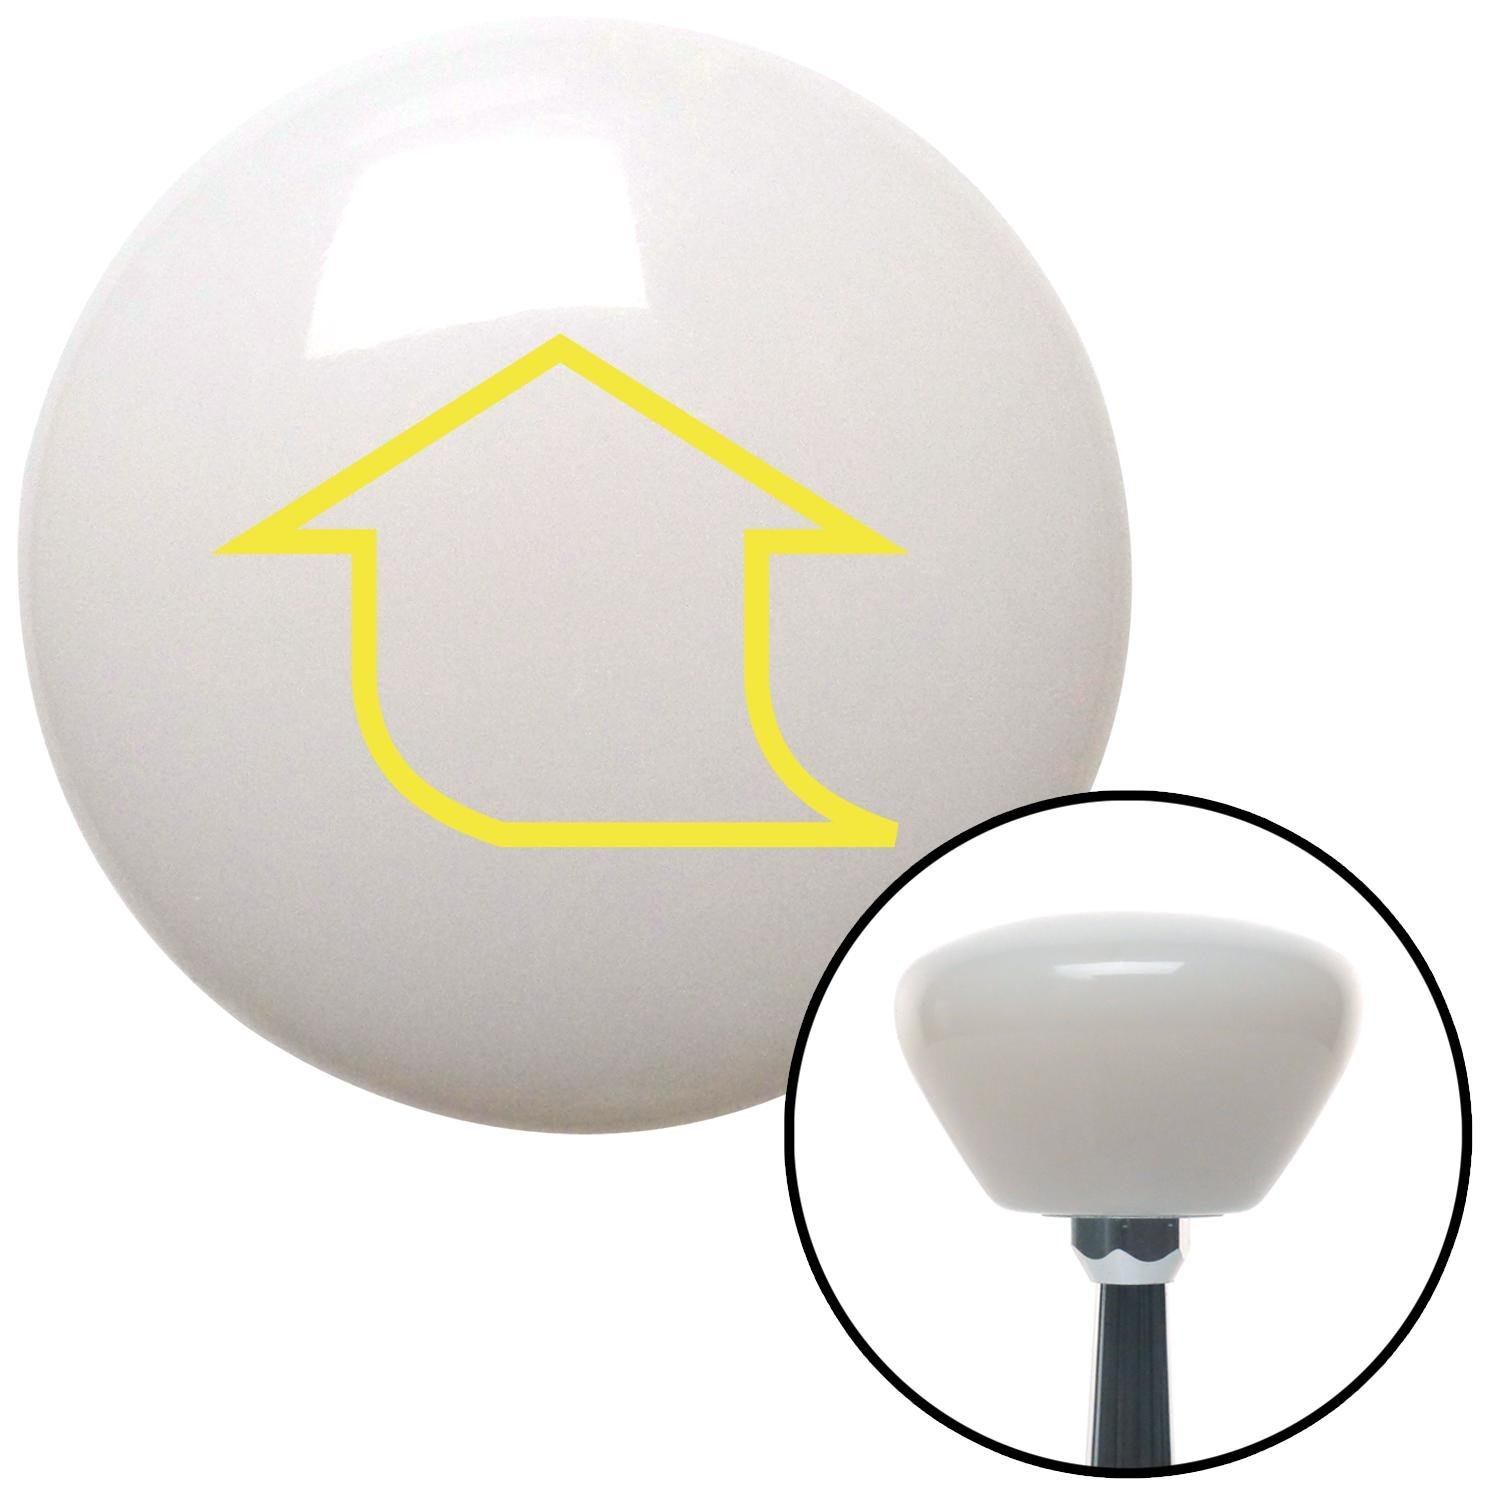 American Shifter 151590 White Retro Shift Knob with M16 x 1.5 Insert Yellow Fat Empty Arrow Up